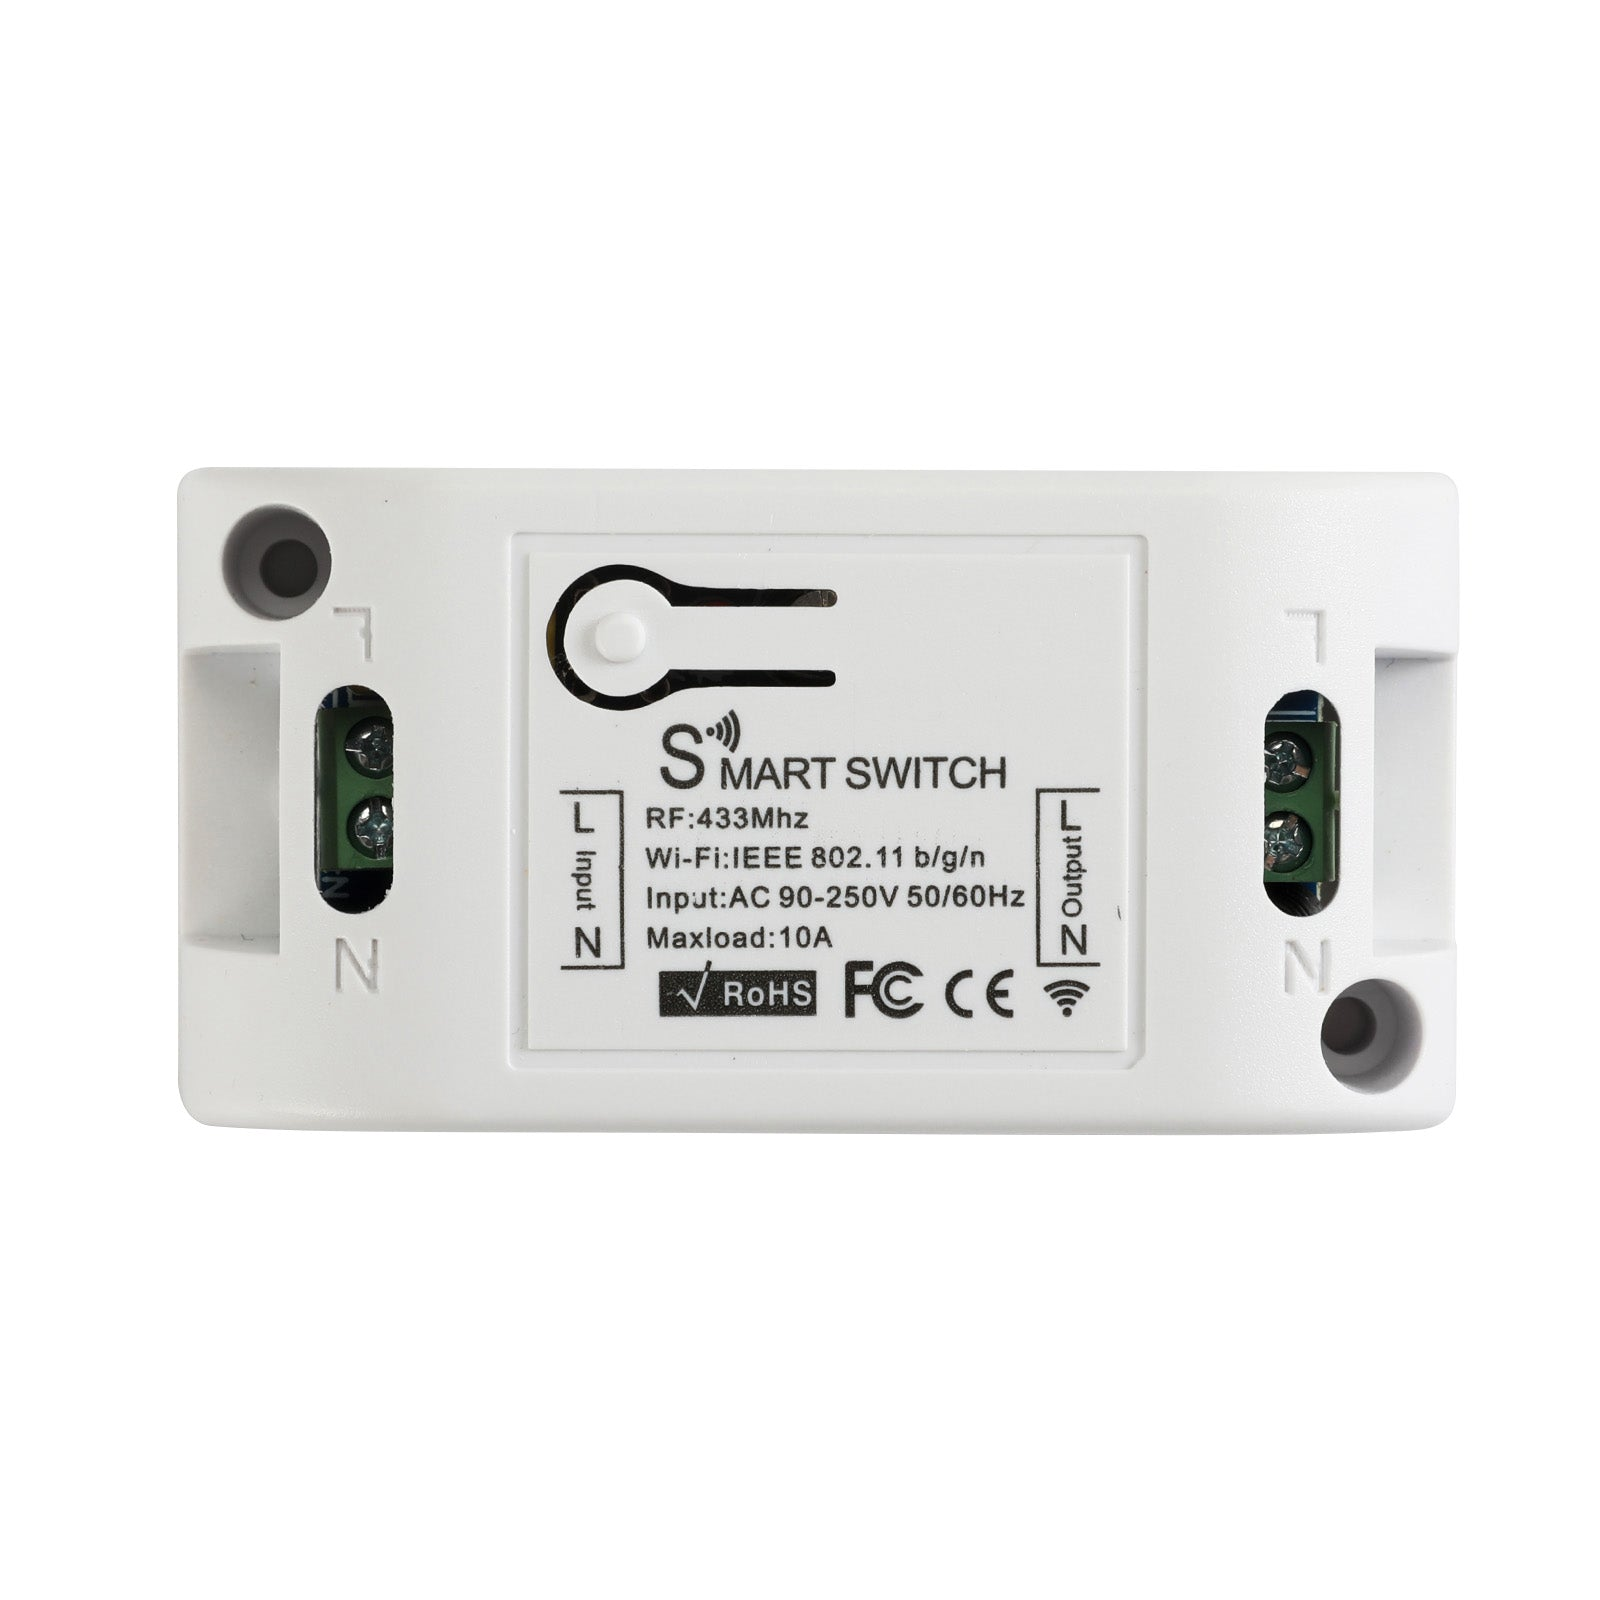 QIACHIP KR2201W  220V 1CH WiFi Smart Light Switches | Home Automation Google Home | 433MHz